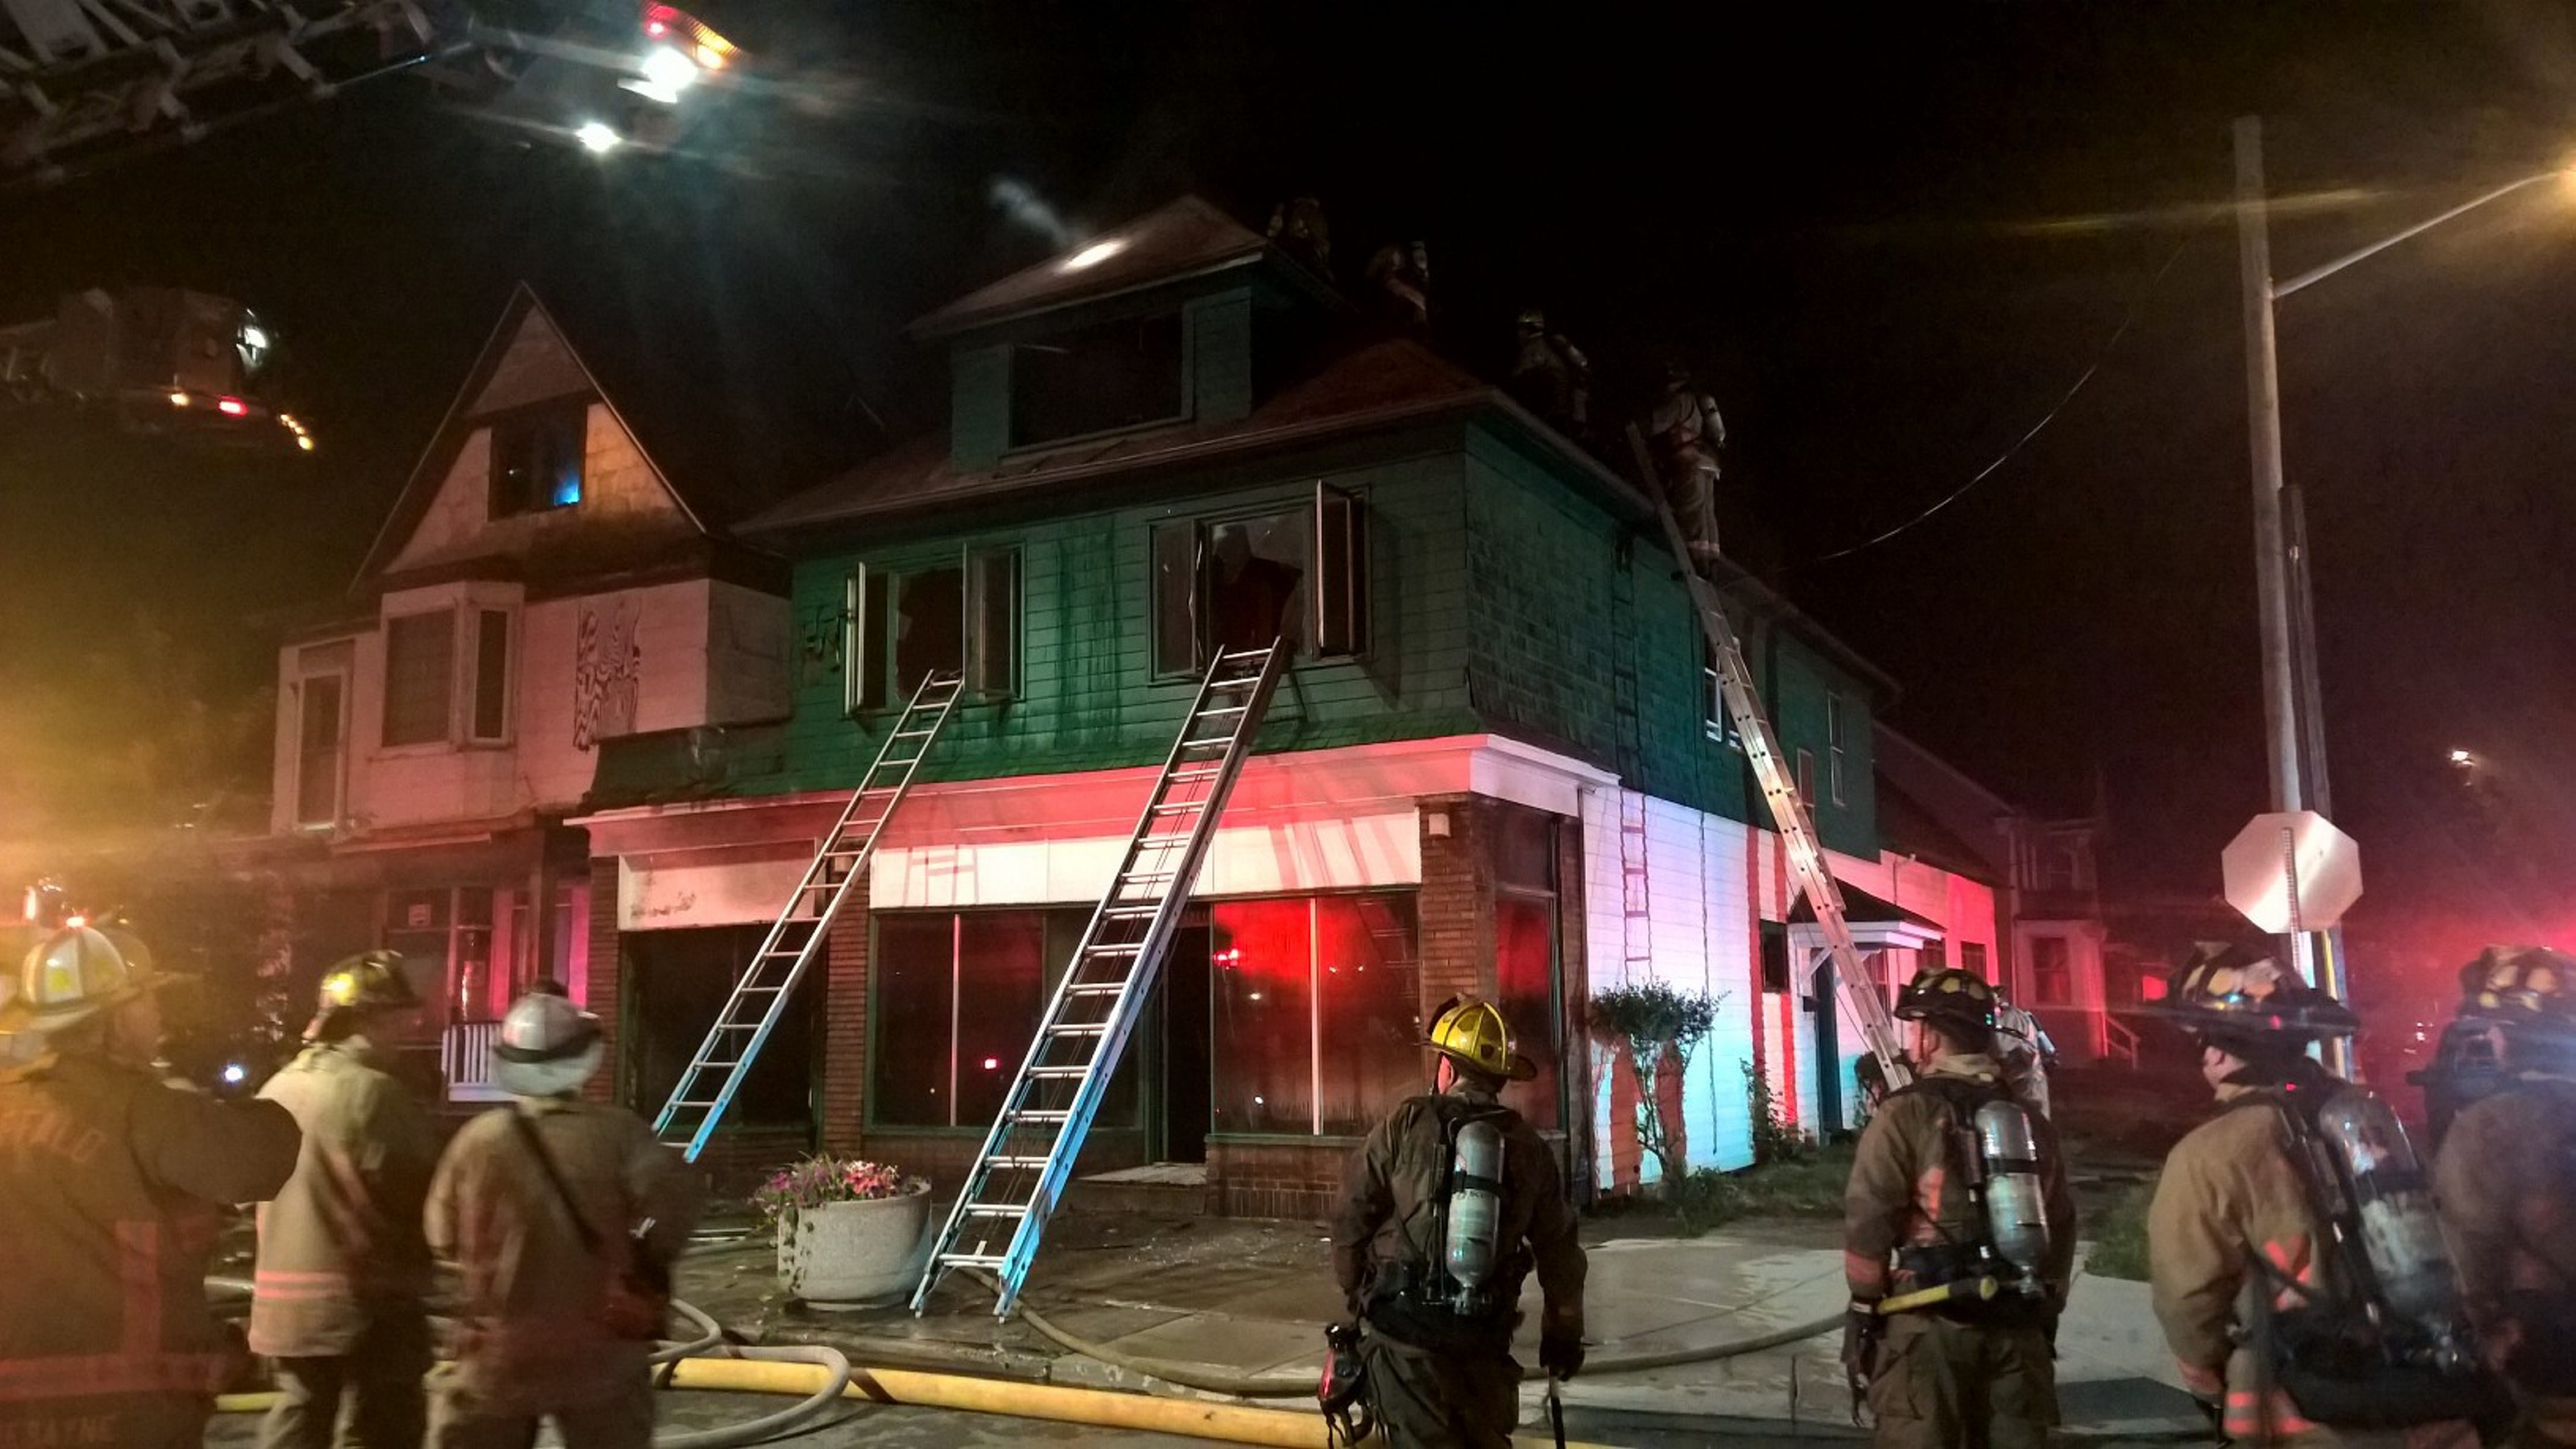 Buffalo firefighters at the scene of the blaze on Lovejoy Street overnight.